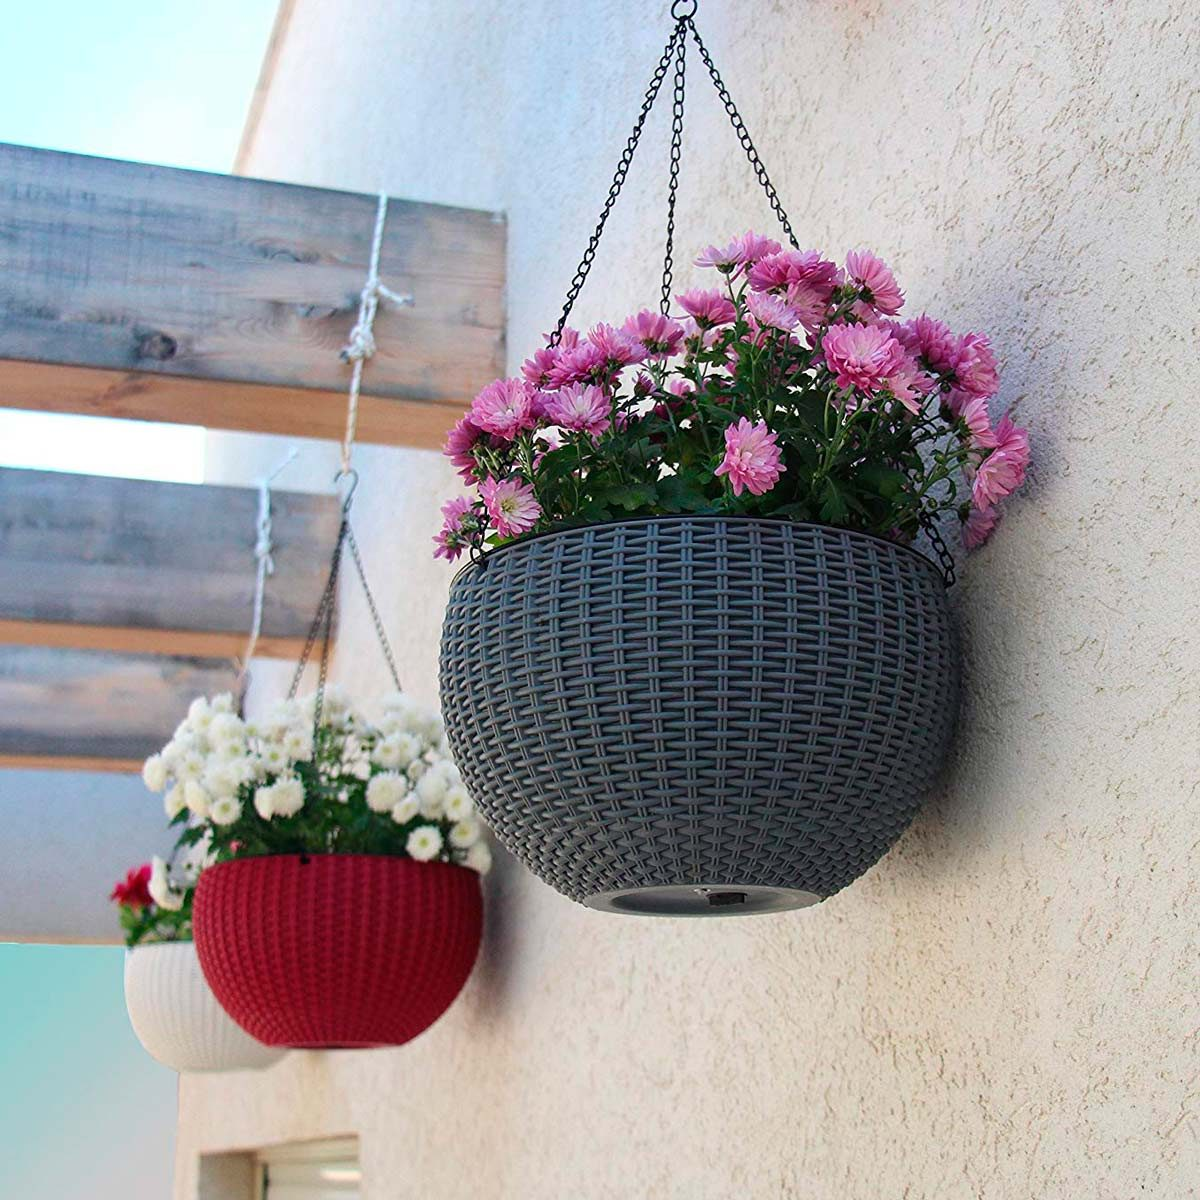 13 Self-Watering Outdoor Planters For The Easiest